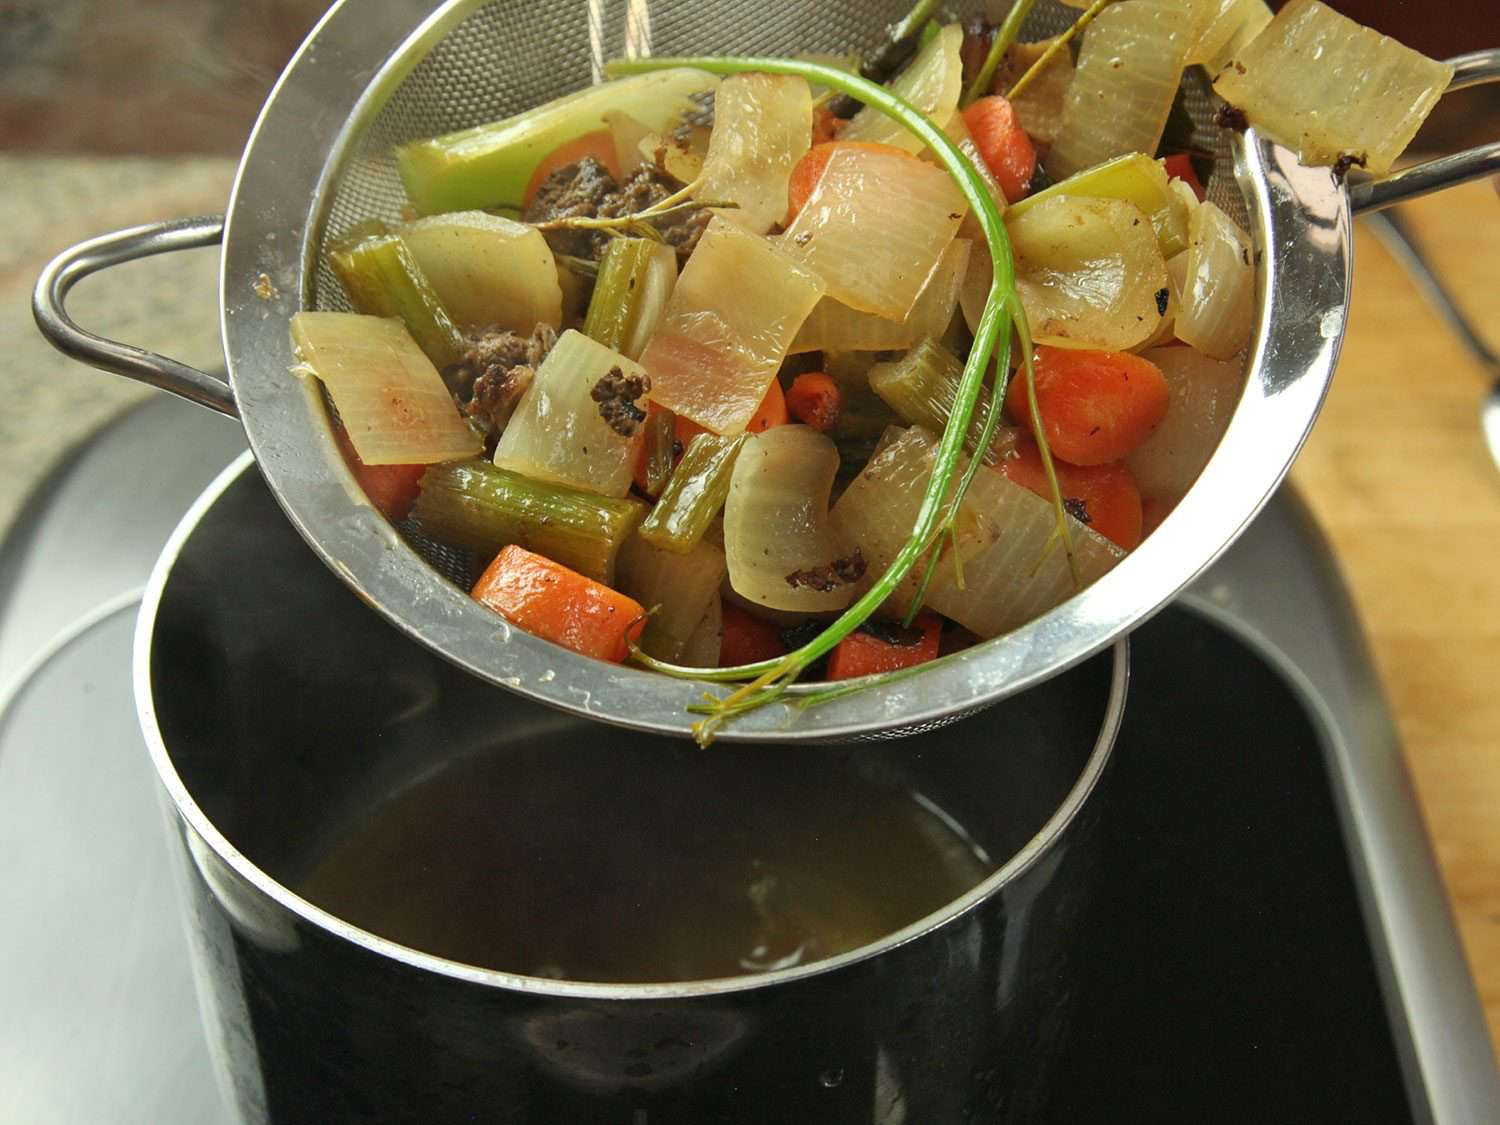 Straining vegetables and chicken back pieces out of a simmered jus mixture.